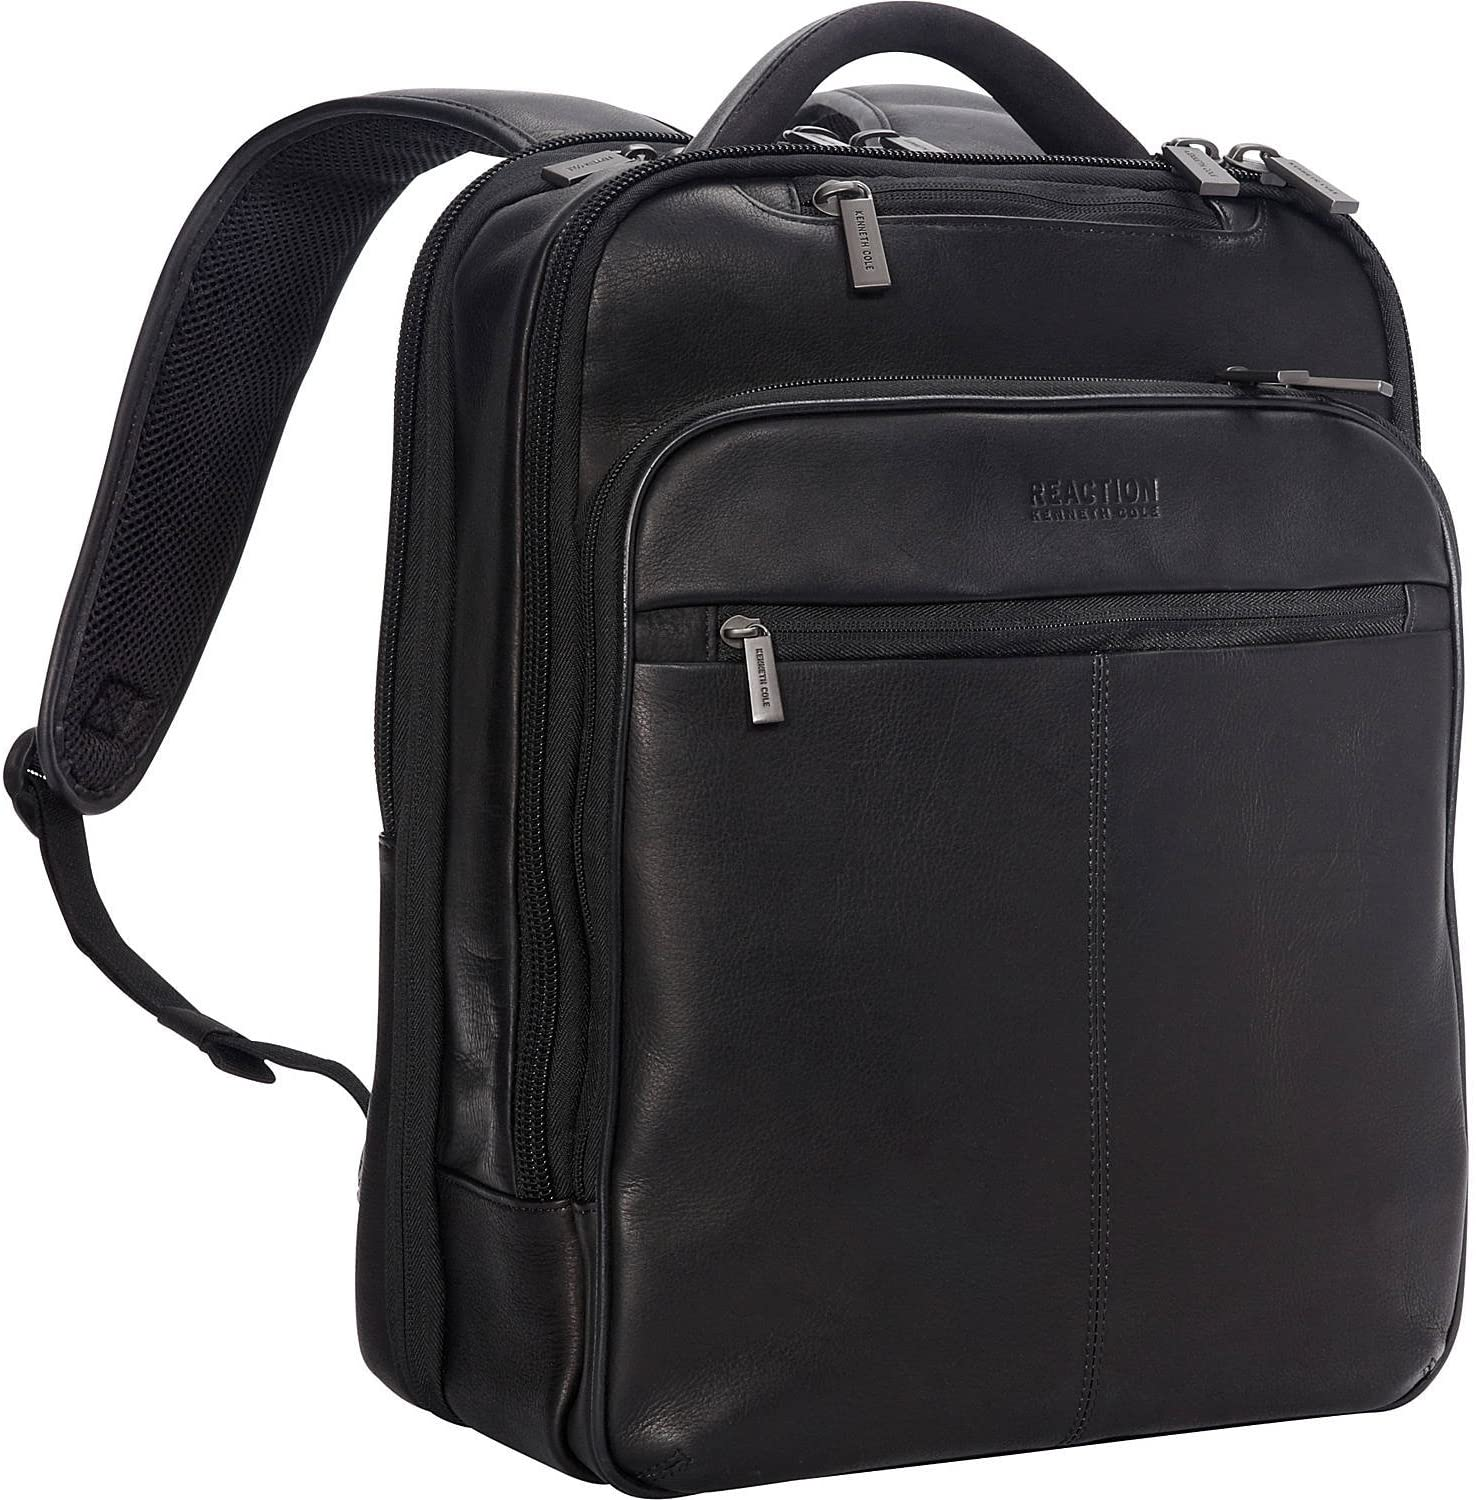 "Kenneth Cole Reaction Manhattan Colombian Leather Slim 16"" Laptop & Tablet RFID Business Backpack, Black, Medium"